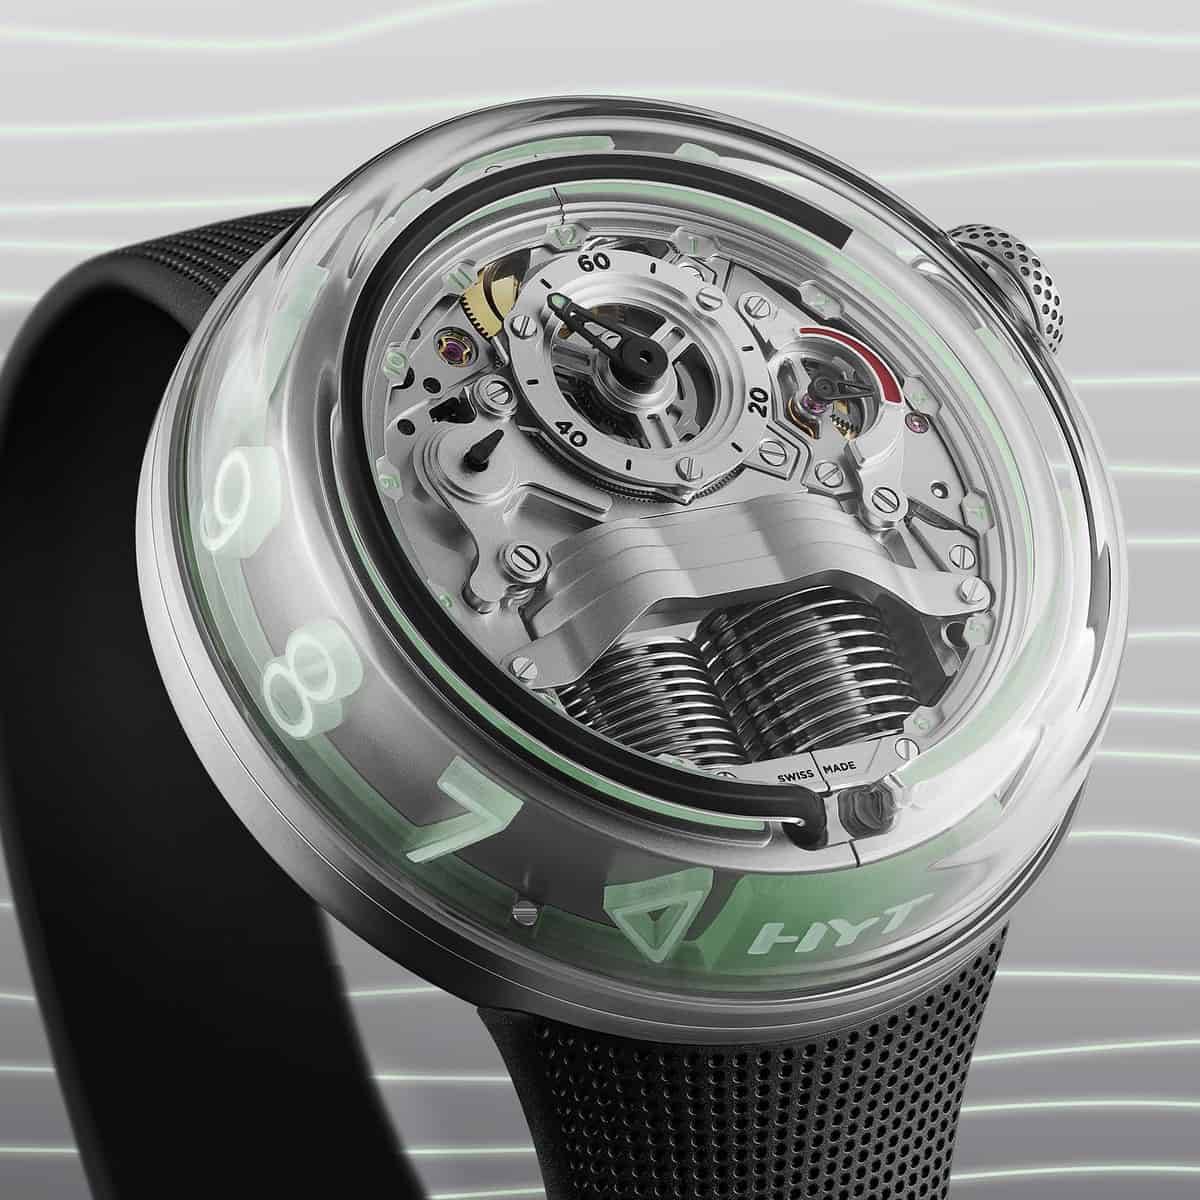 The new HYT H5 Brings a new Movement and Concept of Time